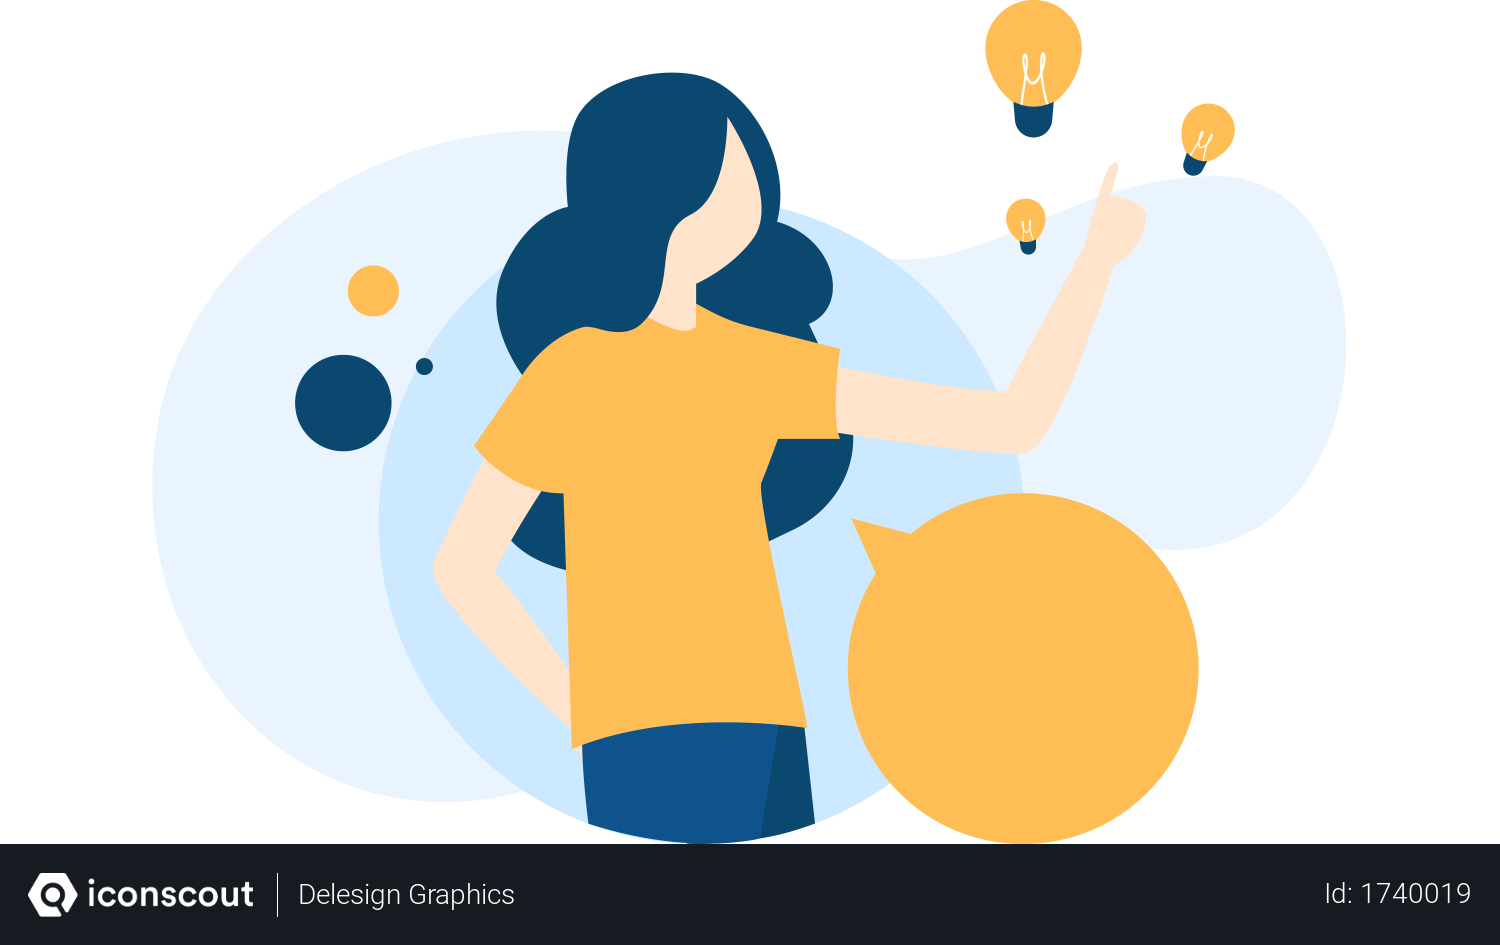 Free About Us Illustration Download In Png Vector Format Business Illustration Illustration This Is Us